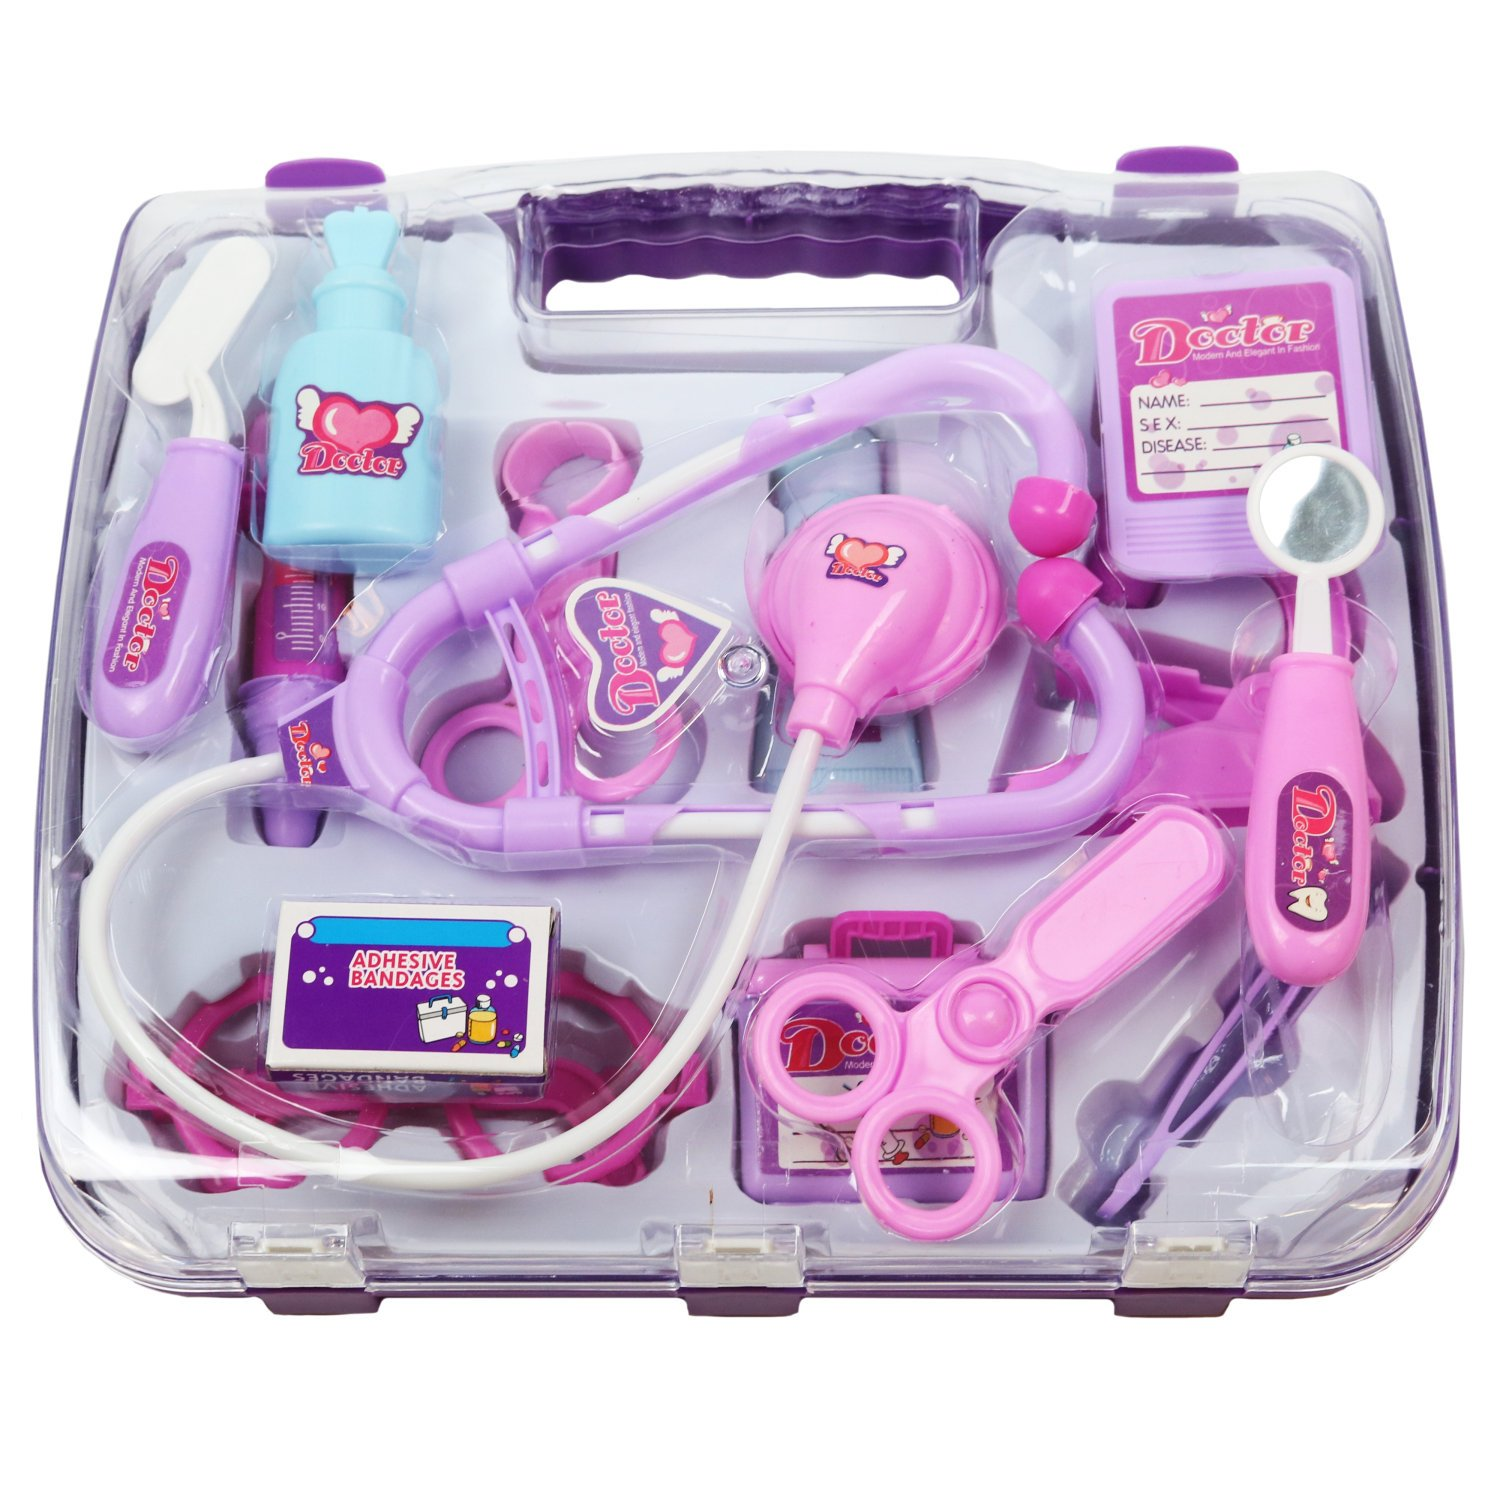 Toy Medical Kit : New pink childrens kids role play doctor nurses toy set